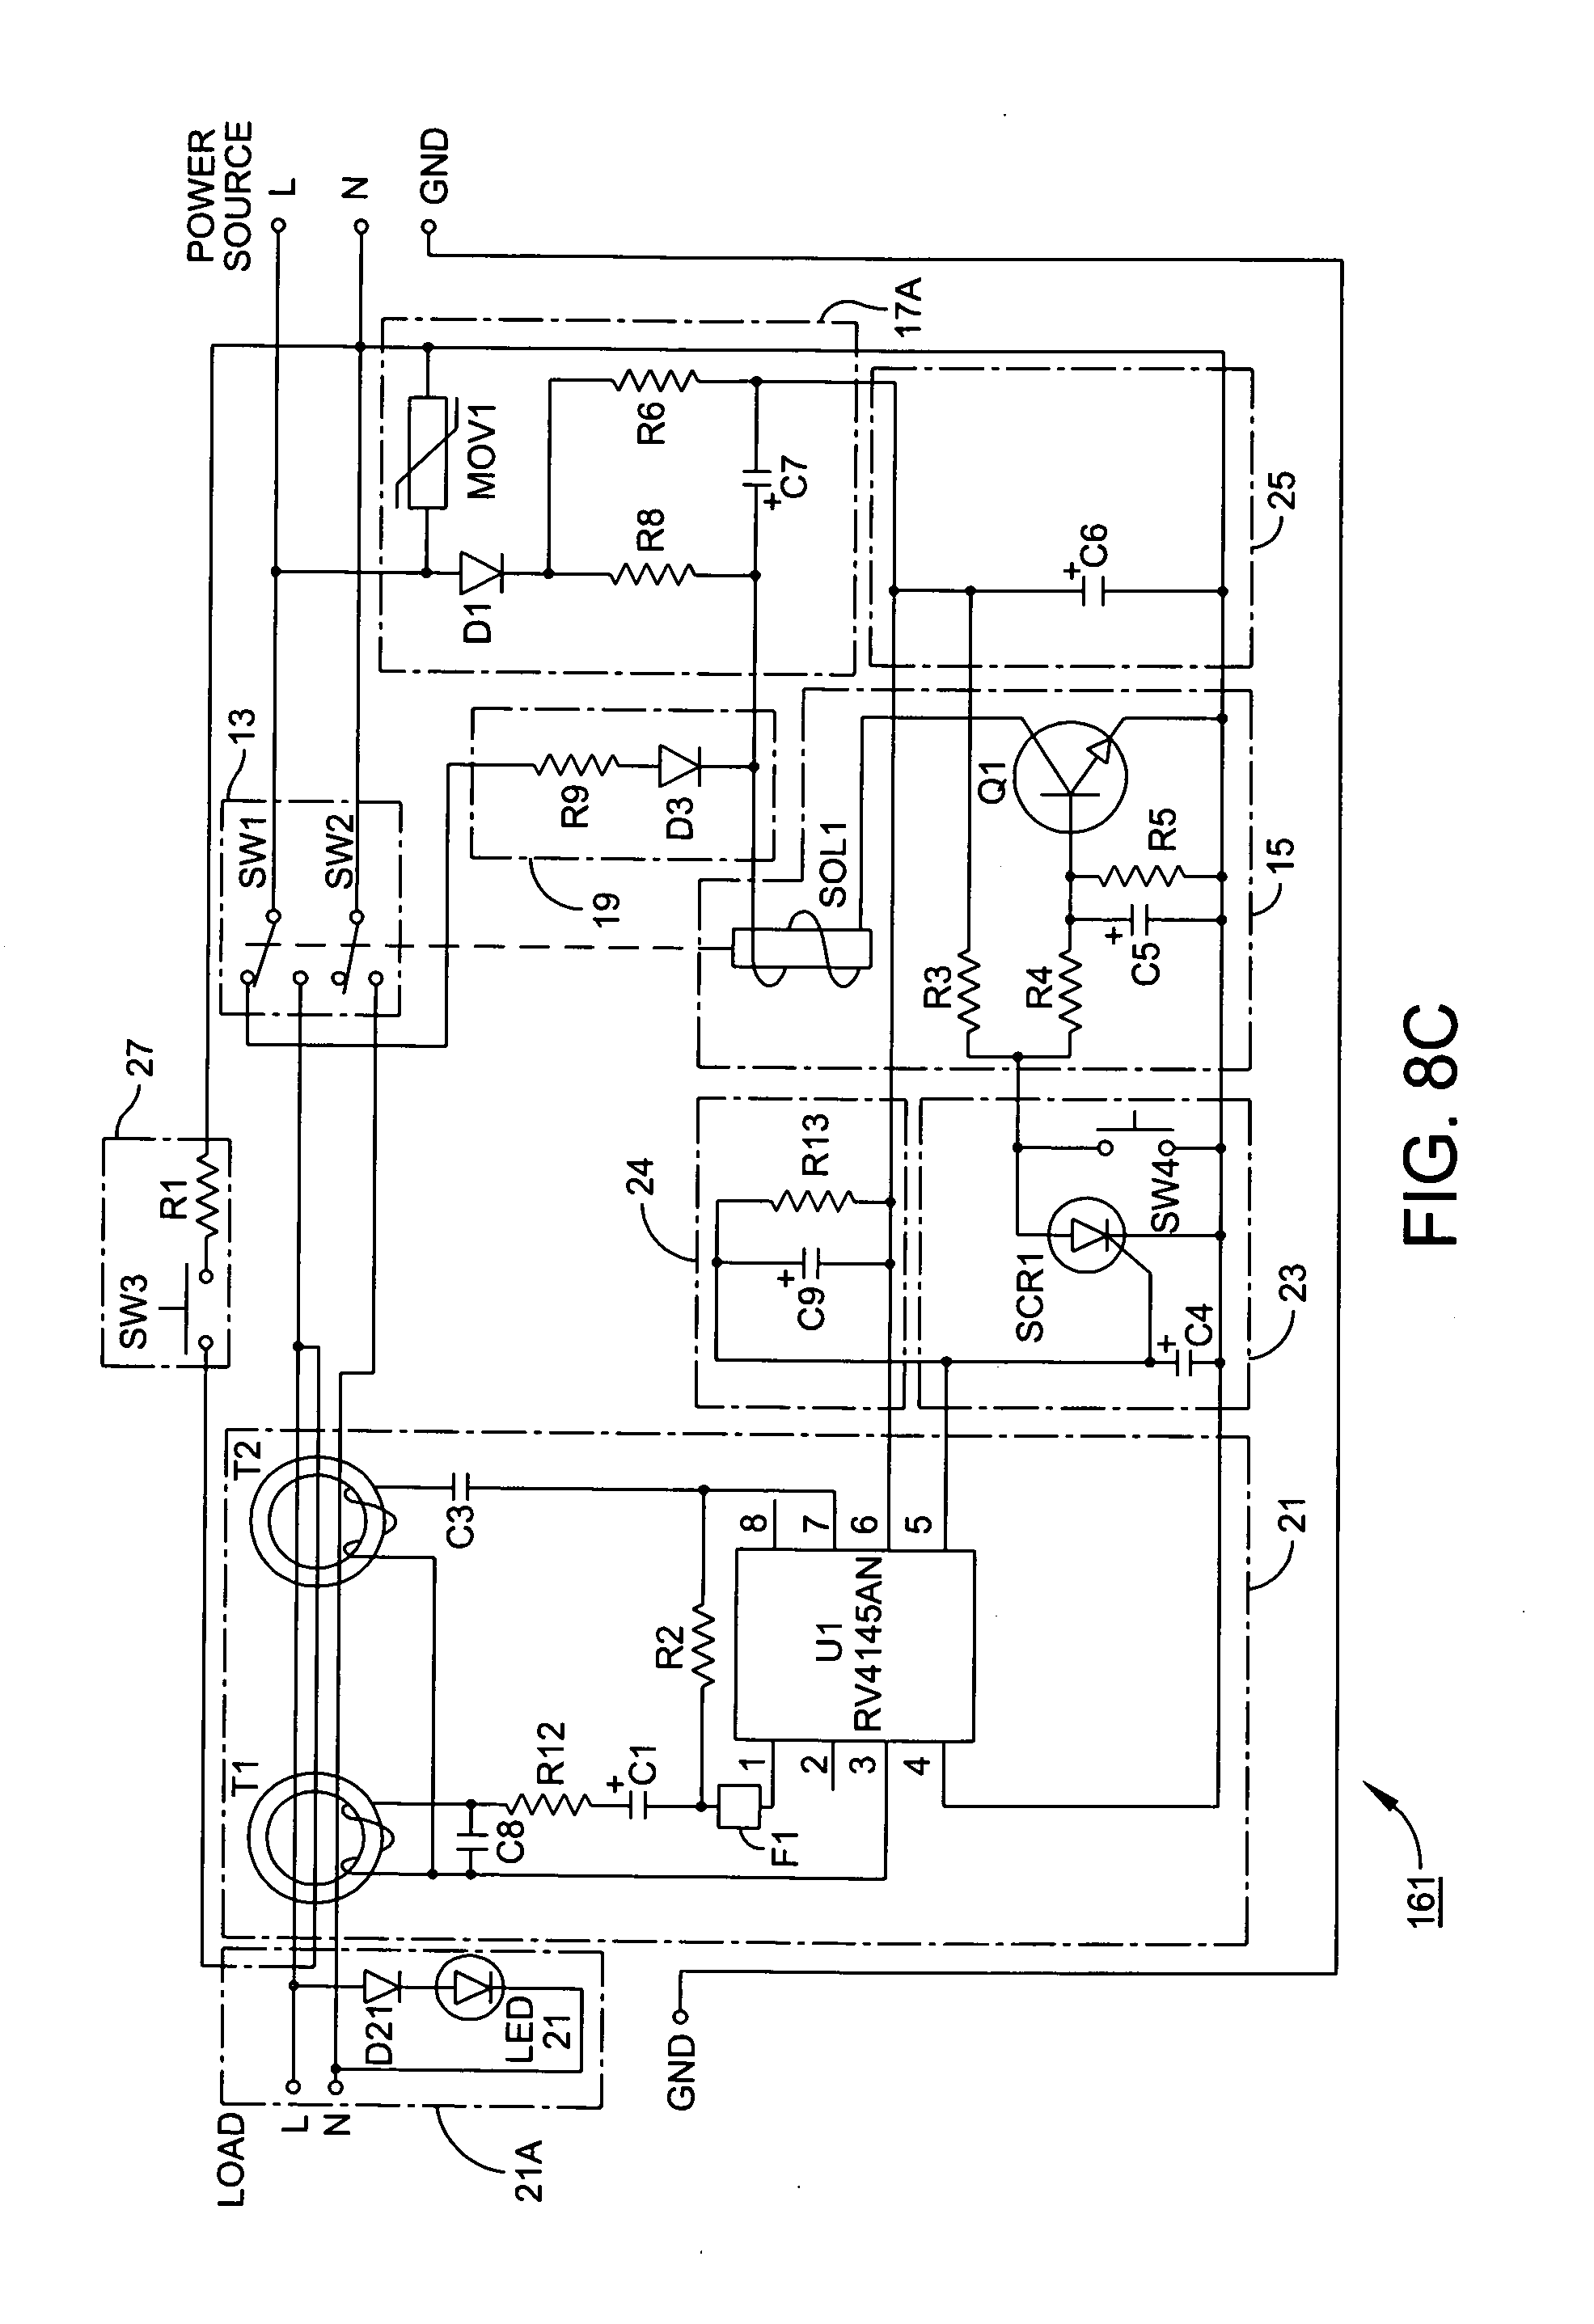 Patent Us20140098446 Universal Ground Fault Interrupter Gfci Rc Reset Circuit Diagram Powersupplycircuit Drawing